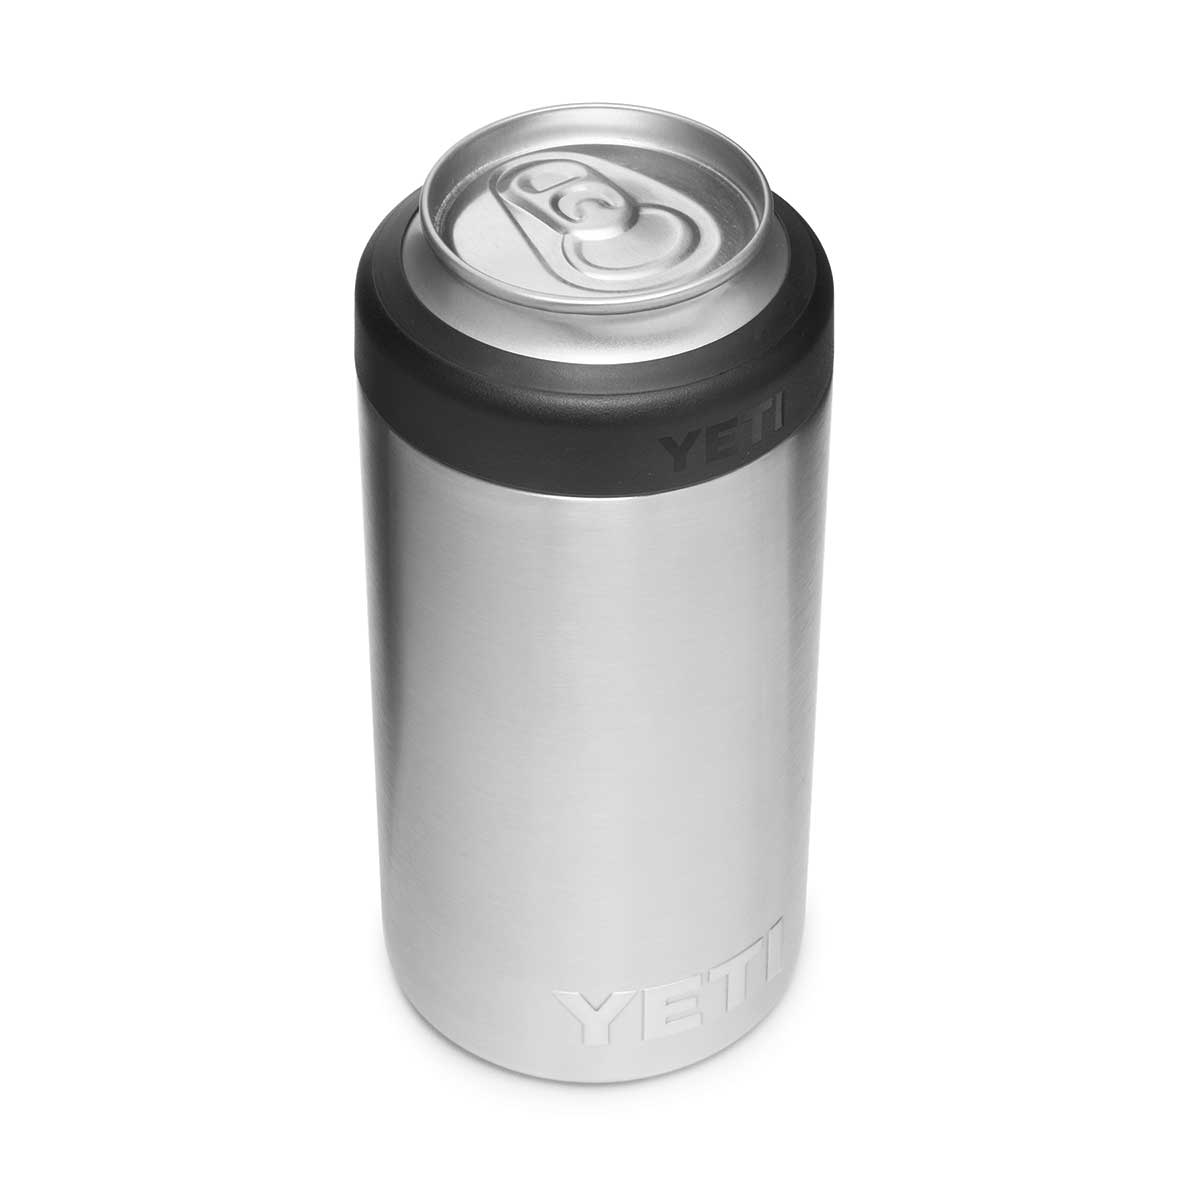 YETI Rambler 16 oz Colster Tall Can